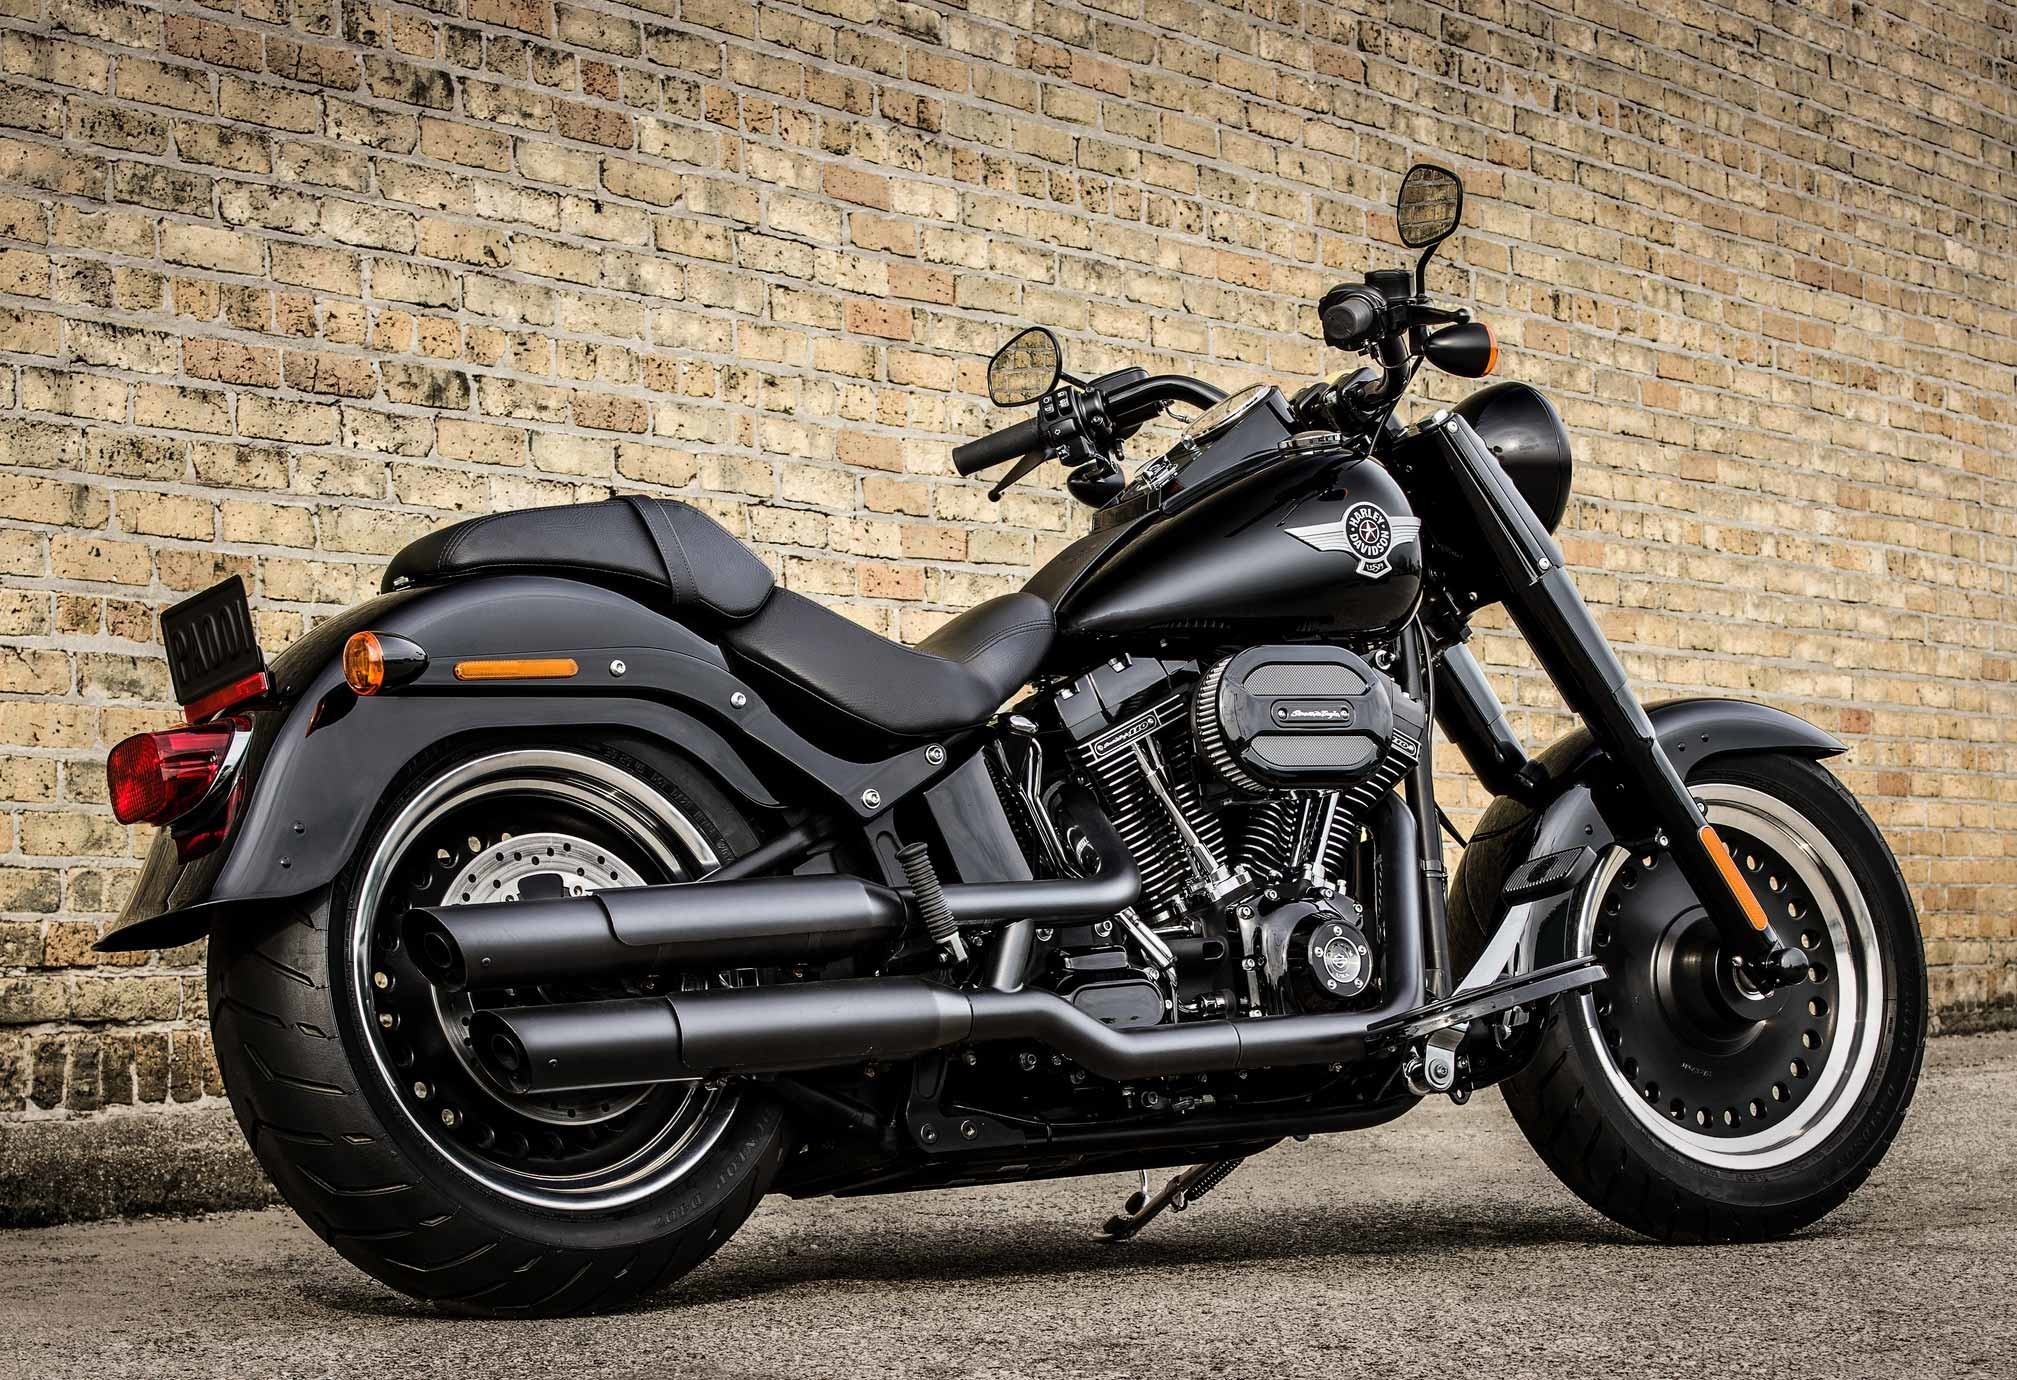 1920x1080 Motorcycles Wallpapers Harley Davidson Dyna Low Rider S